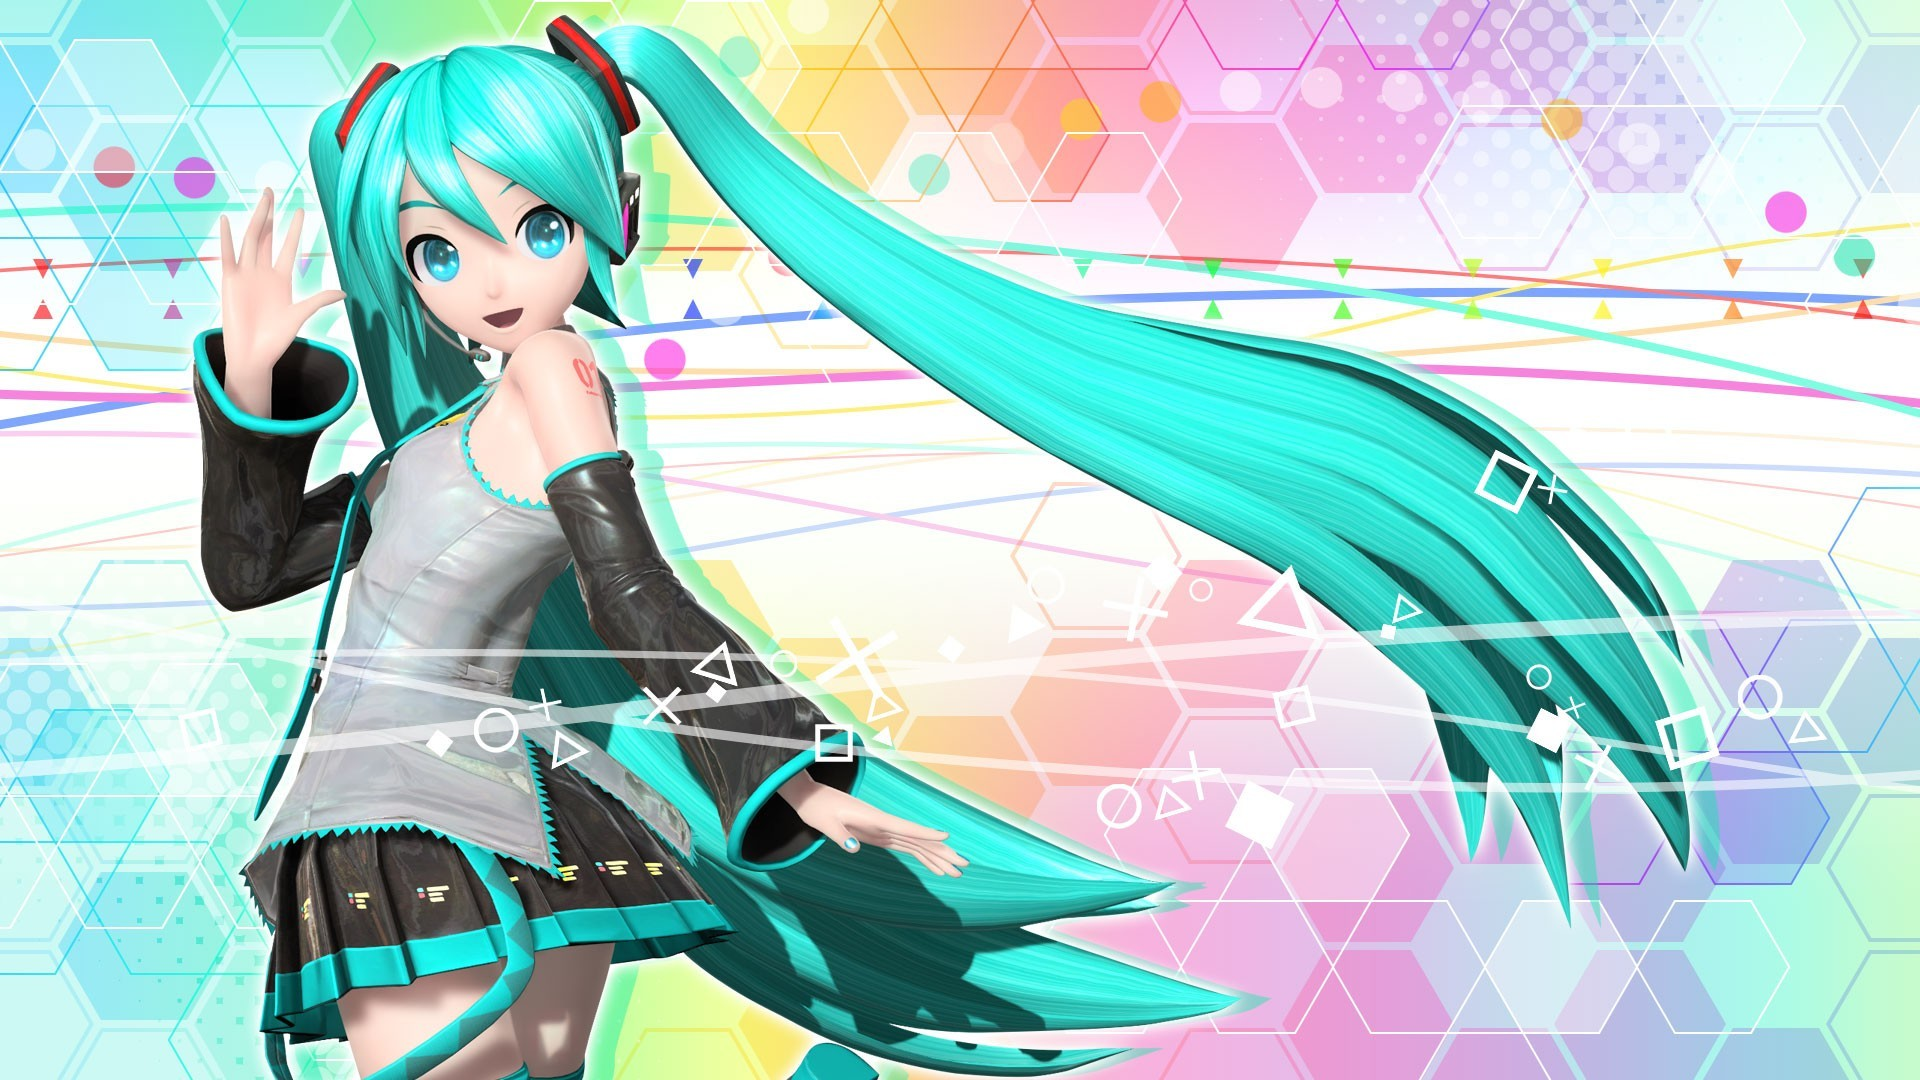 Project Diva wallpaper